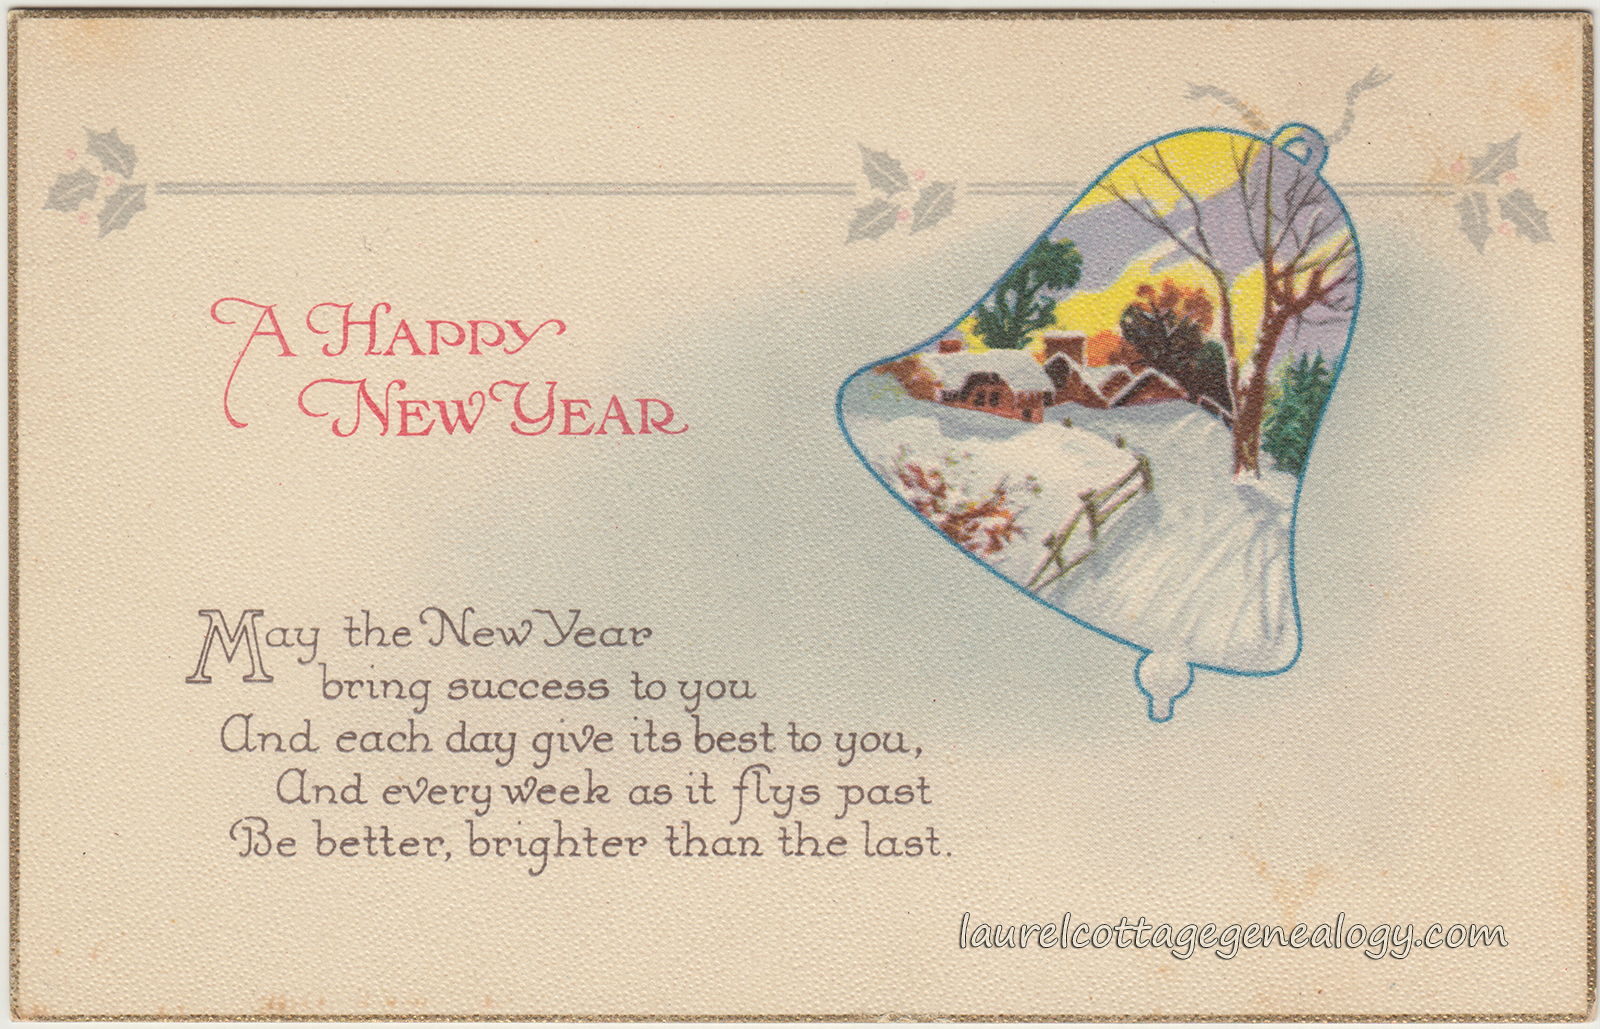 Winter Scene in Bell New Year Greetings | Laurel Cottage Genealogy